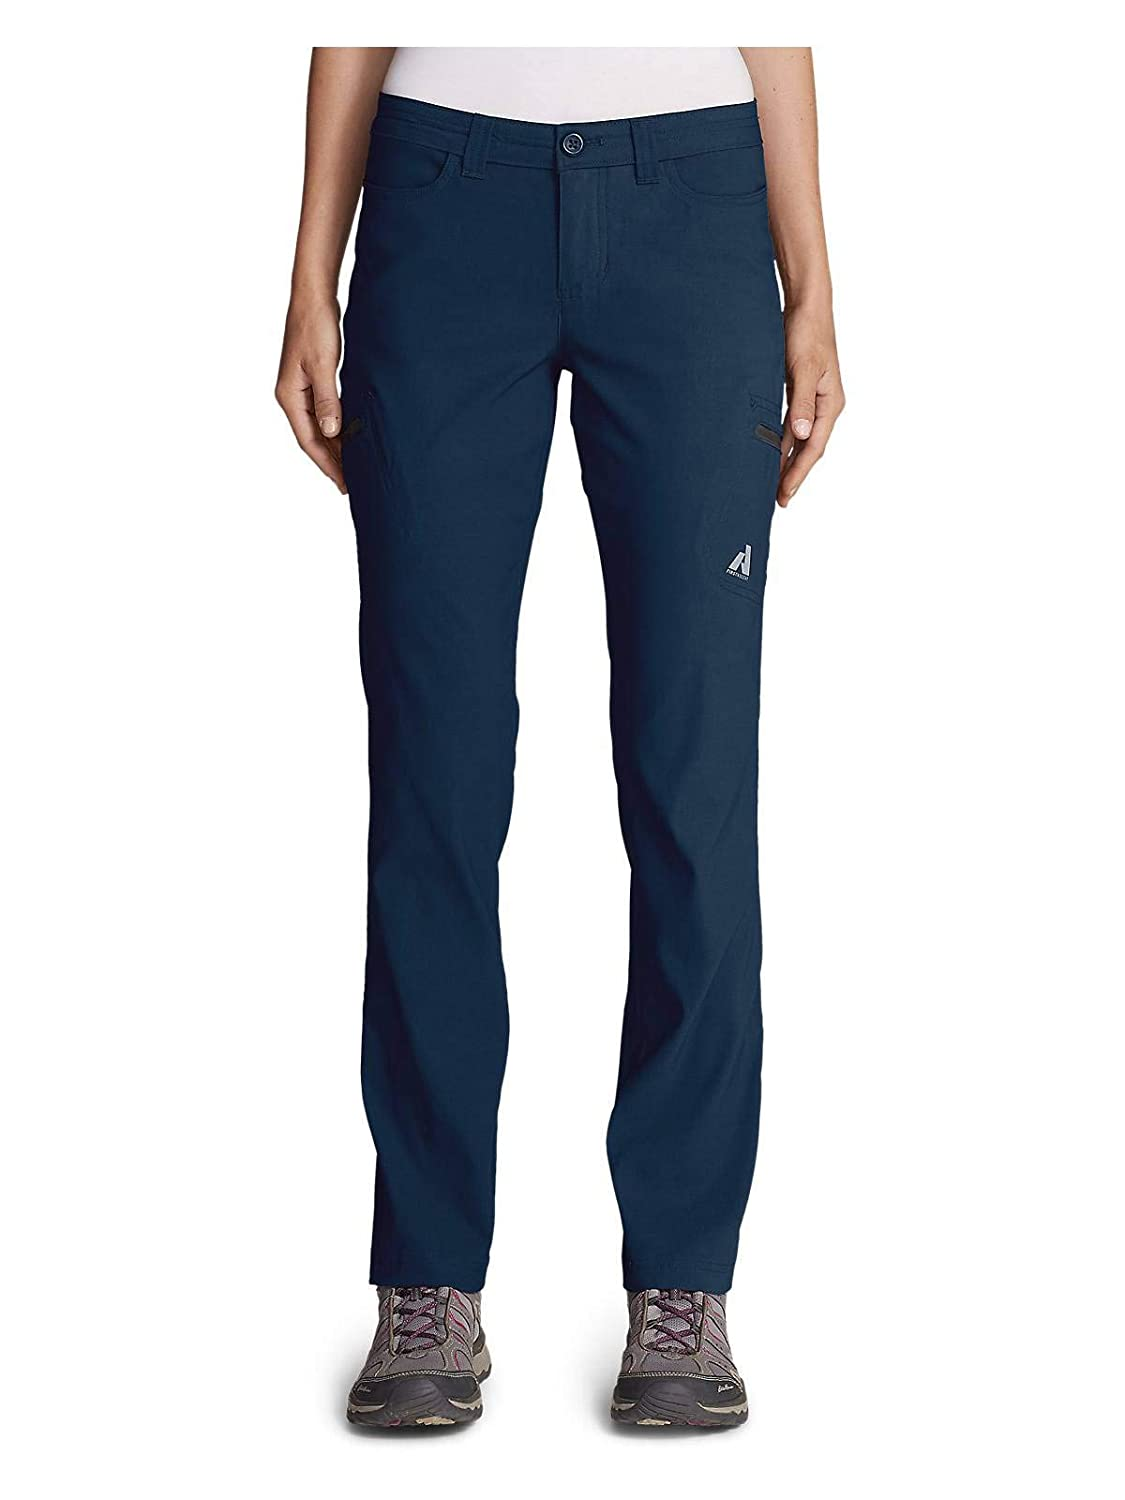 Eddie Bauer Women's Guide Pro Pants 23151062